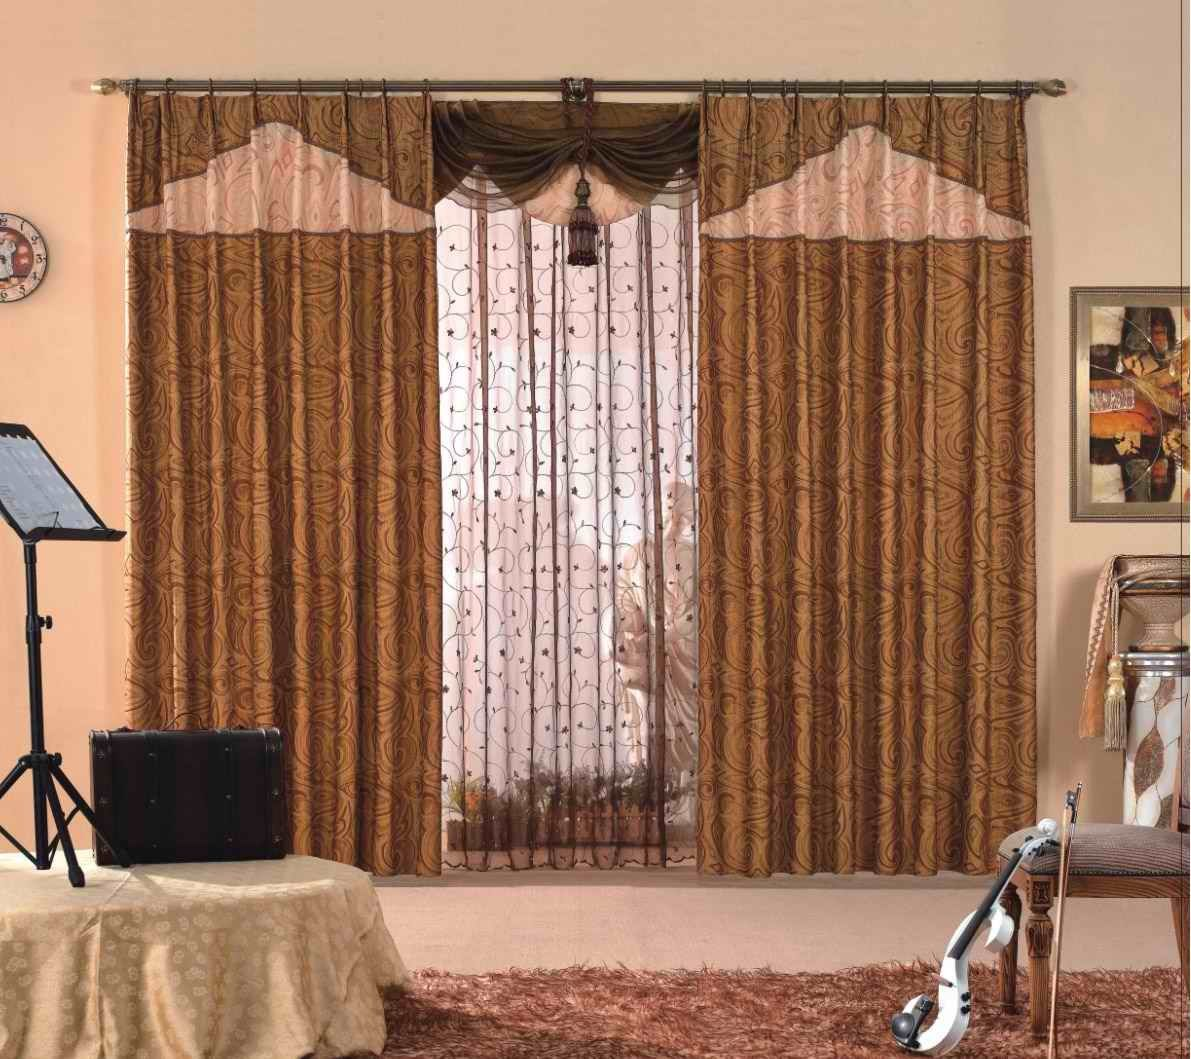 Drapery Designs Pictures Restaurant Curtain View Restaurant Curtain Wisestock Product Deta Drapes Curtains Living Room Curtains Living Room Drapes Curtains